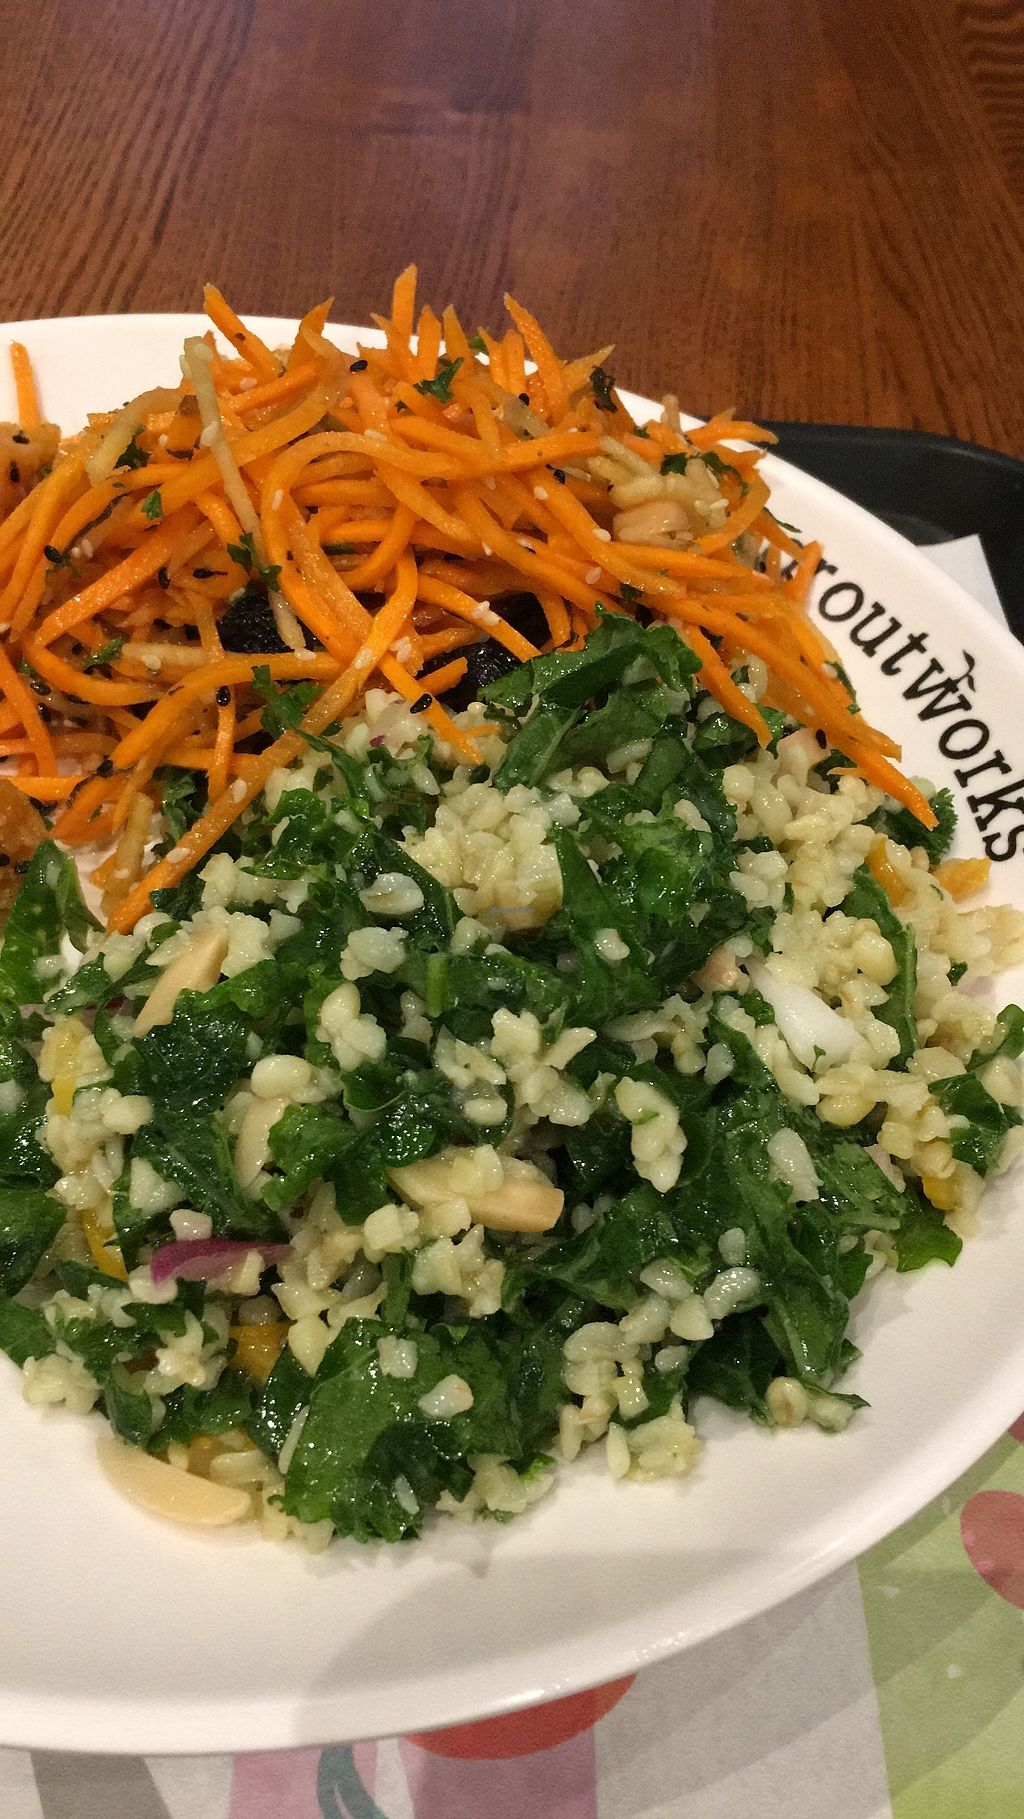 "Photo of Sproutworks - XinTianDi  by <a href=""/members/profile/SP"">SP</a> <br/>kale-bulgur & carrot-chick peas-raisins <br/> December 12, 2017  - <a href='/contact/abuse/image/47880/334831'>Report</a>"